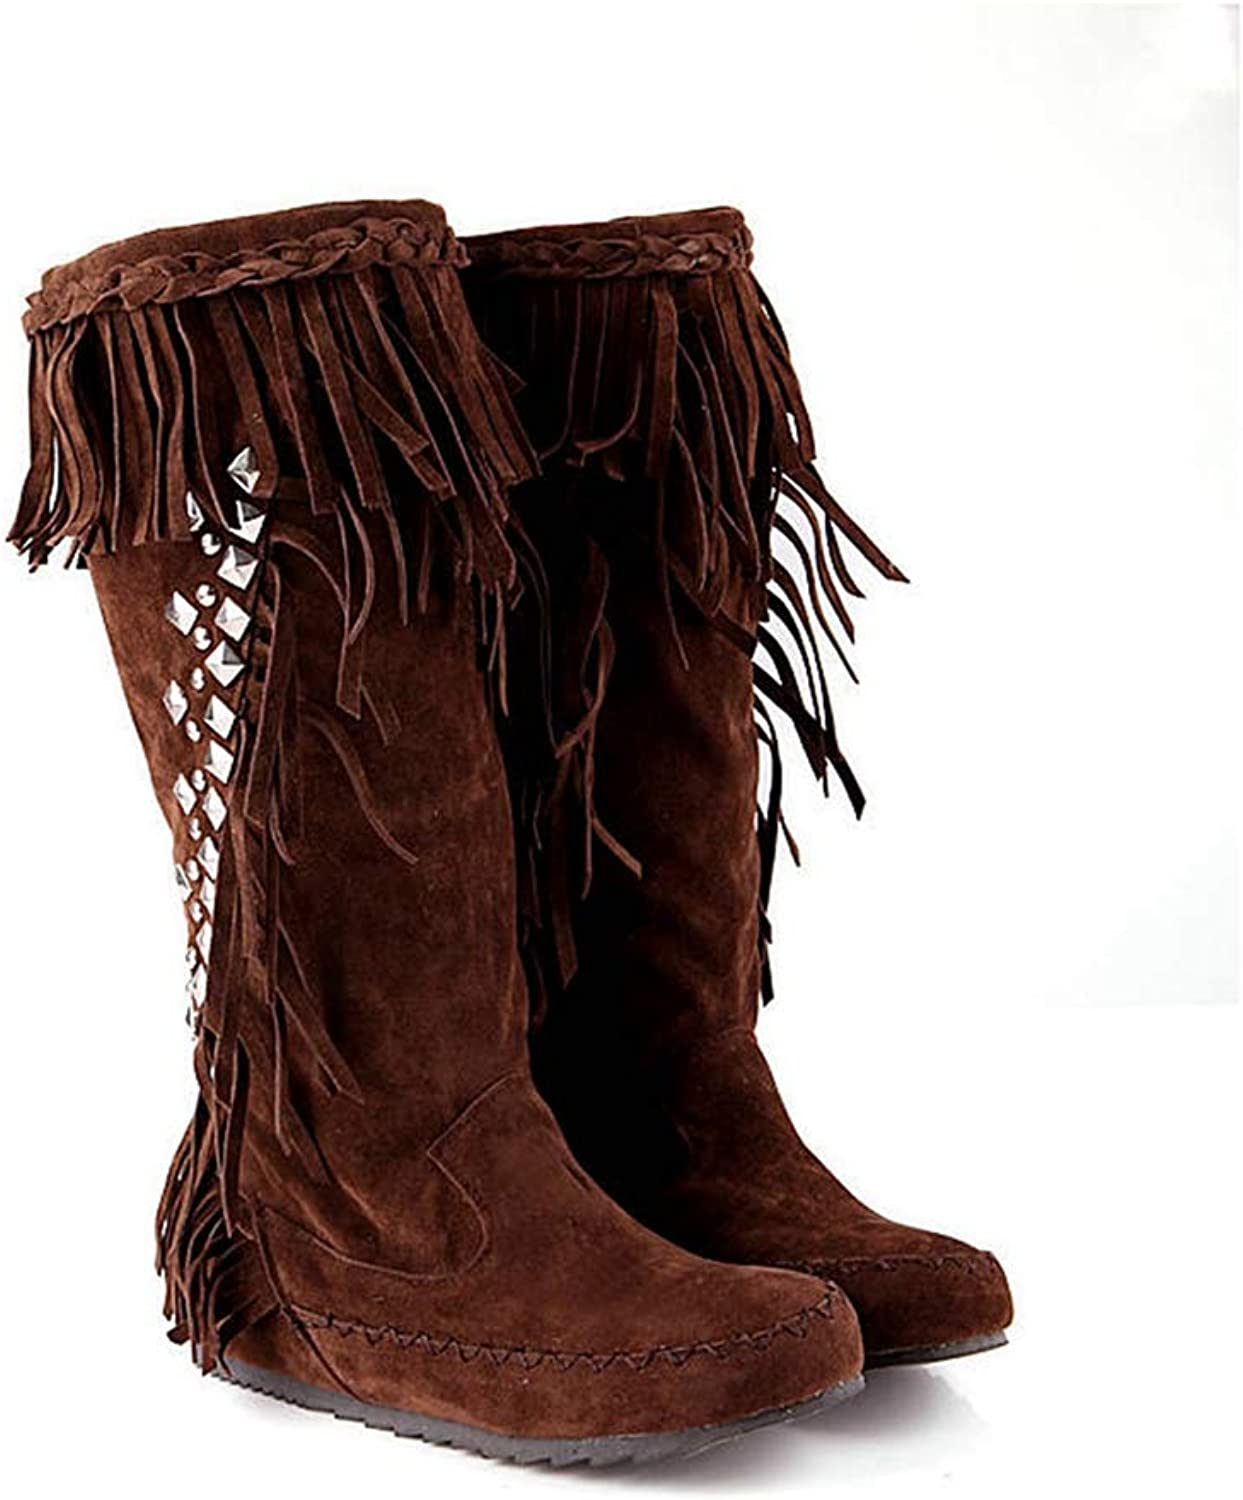 T-JULY Mid Calf Boots for Women Round Toe Tassels Autumn Winter Boots Comfortable Flat shoes Warm Fashion Boots